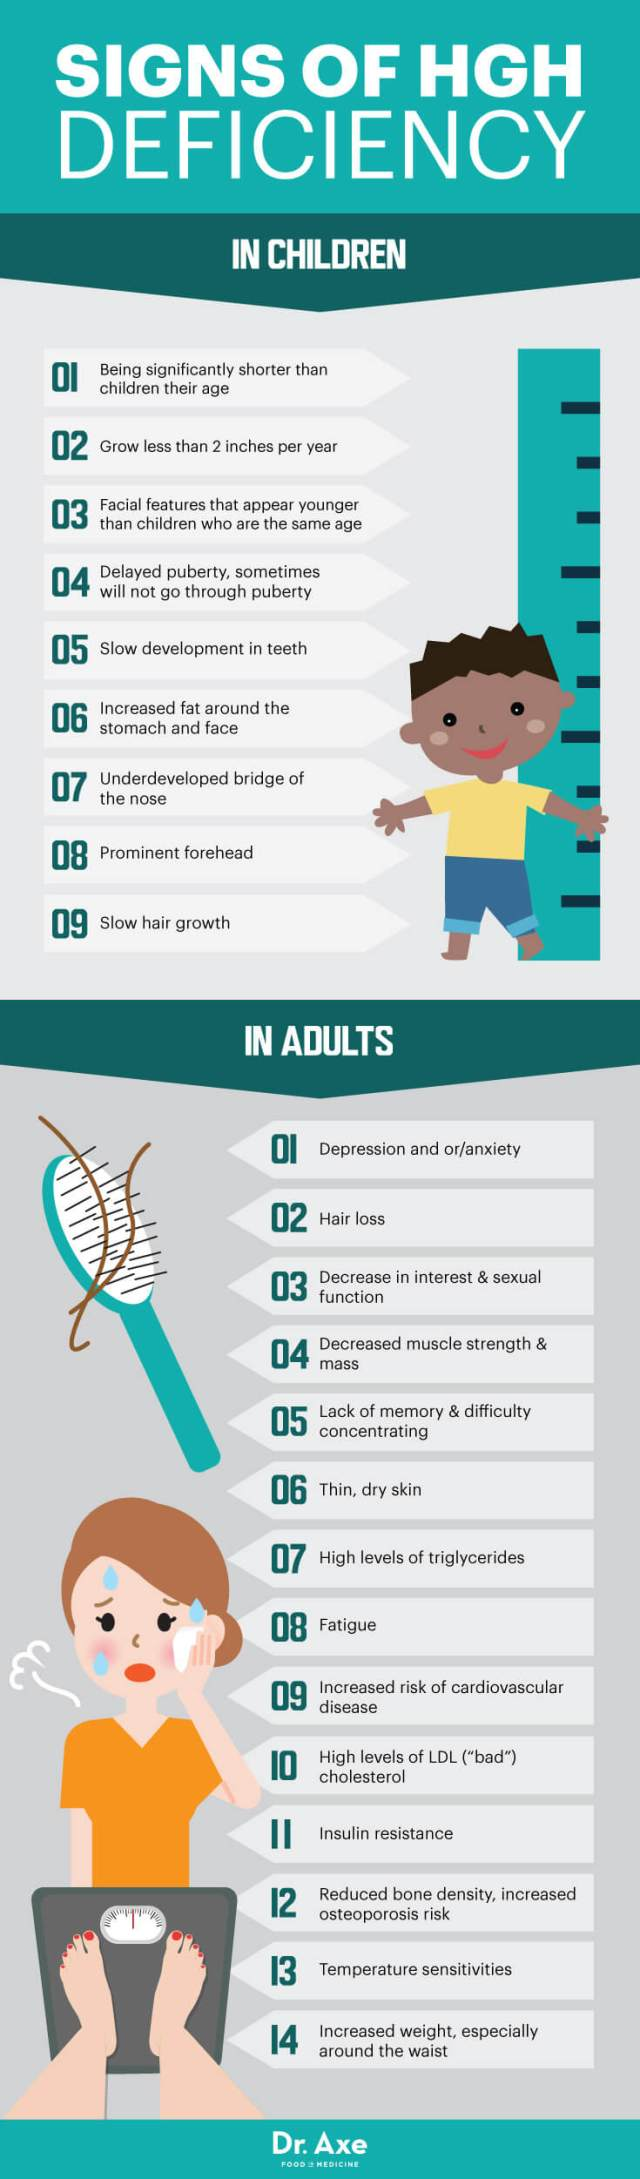 Signs of HGH Deficiency